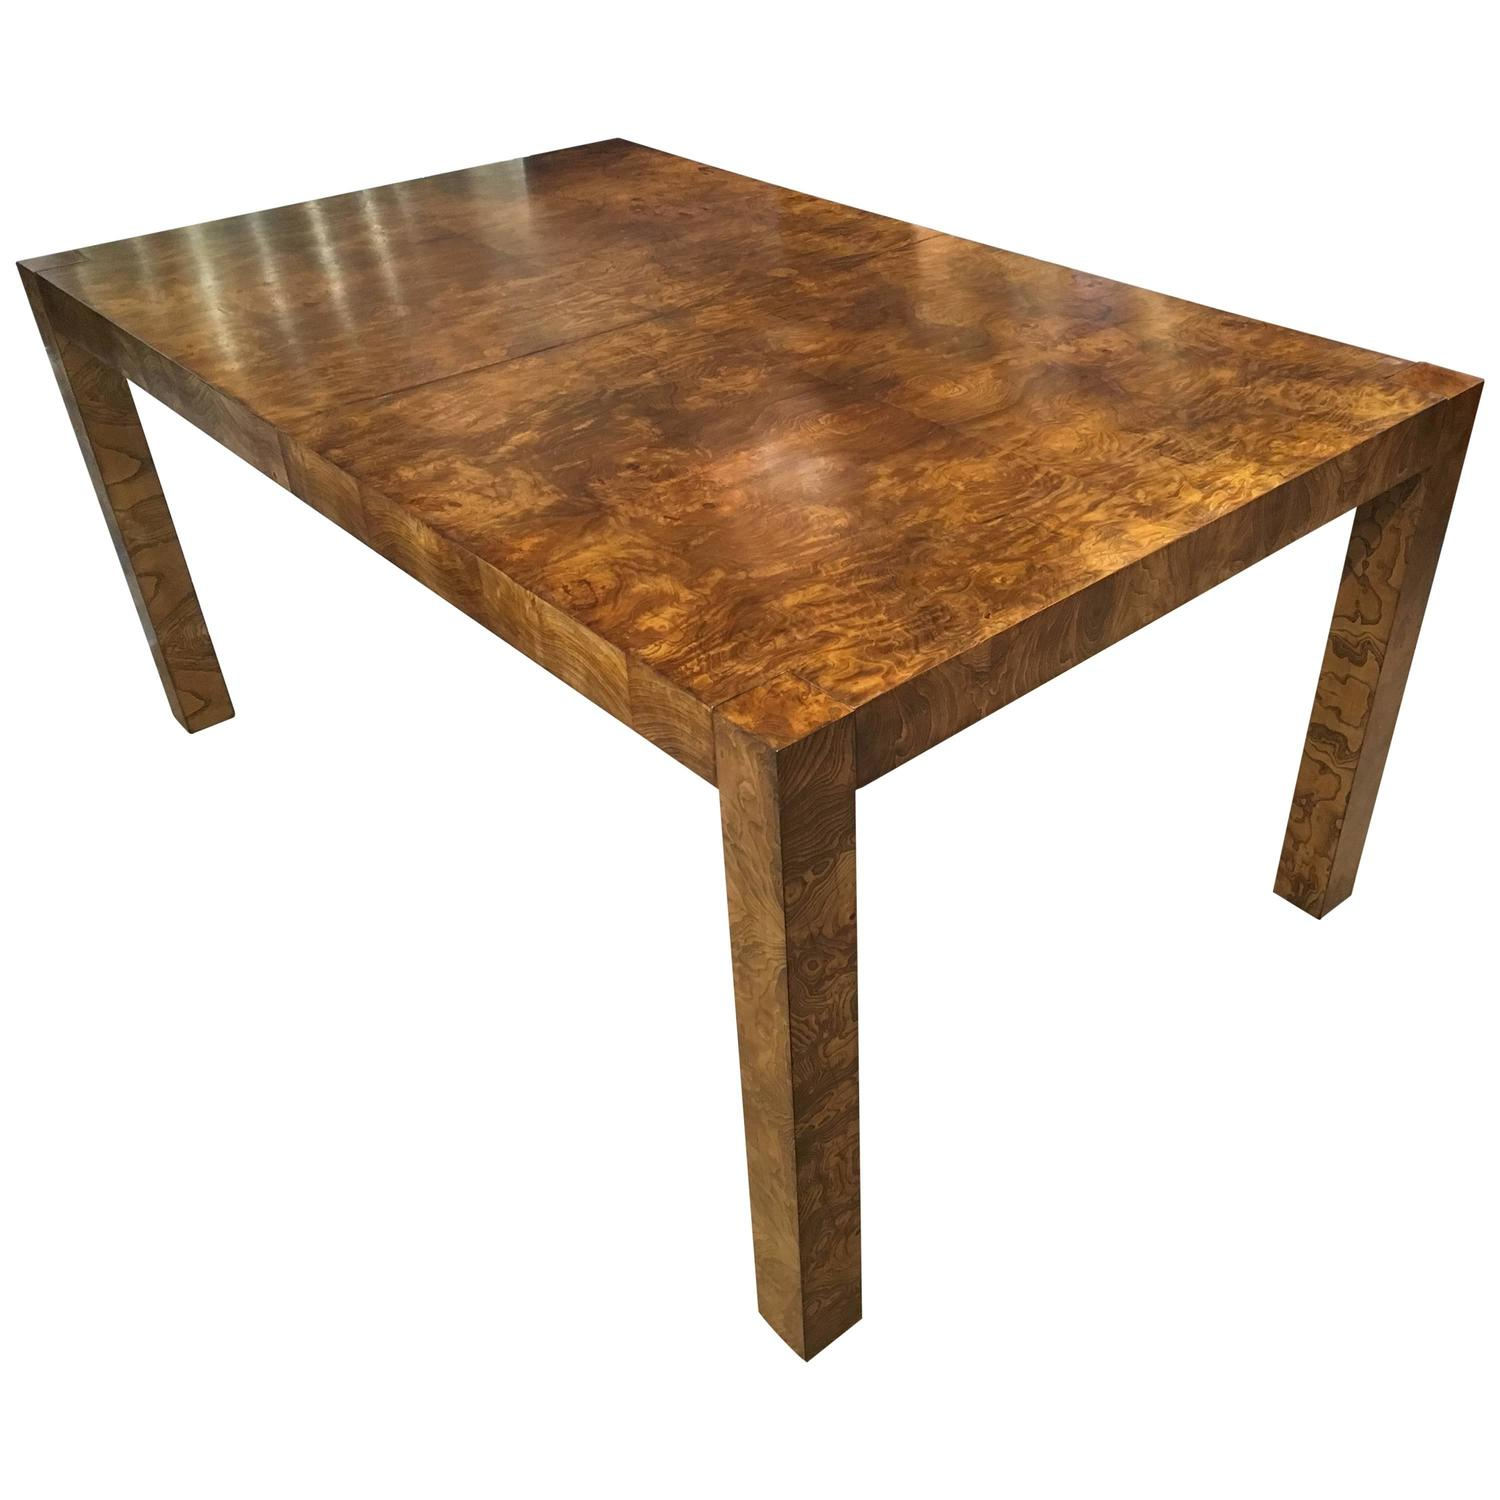 Stunning Milo Baughman Burl Dining Table at 1stdibs